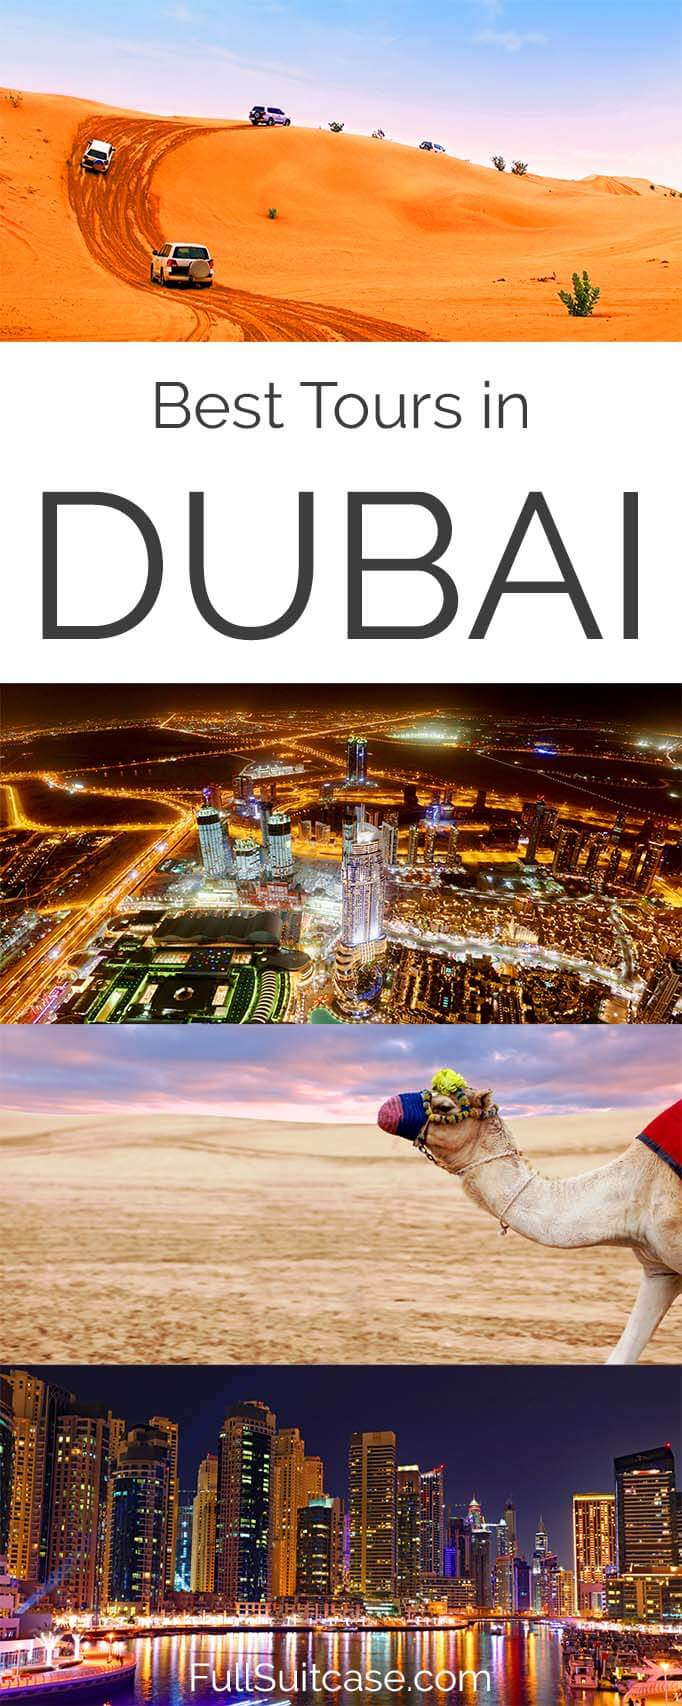 Best excursions, tours, and day trips in Dubai UAE